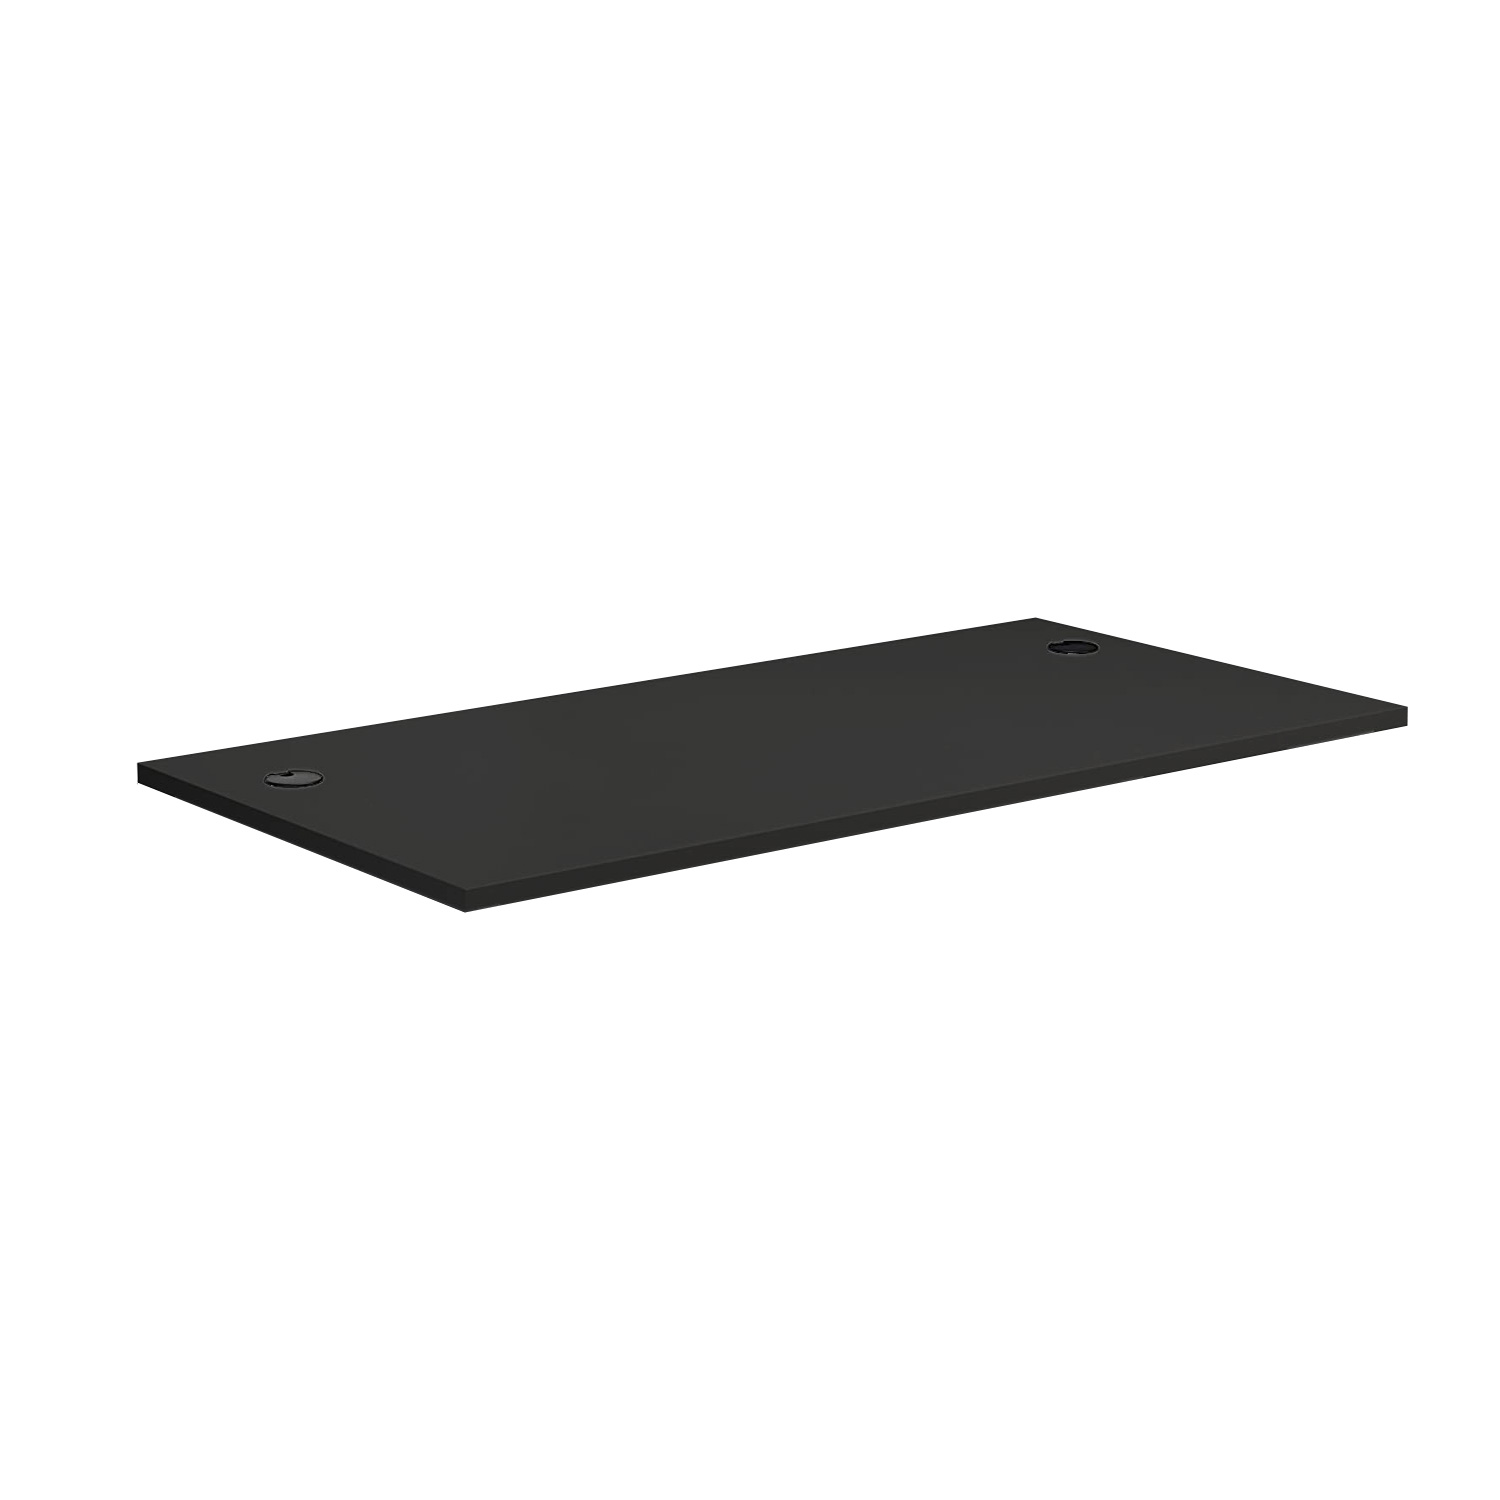 DT148CH8BK Commercial MFC Desk-top 1400x800 mm with Cable Holes in Black